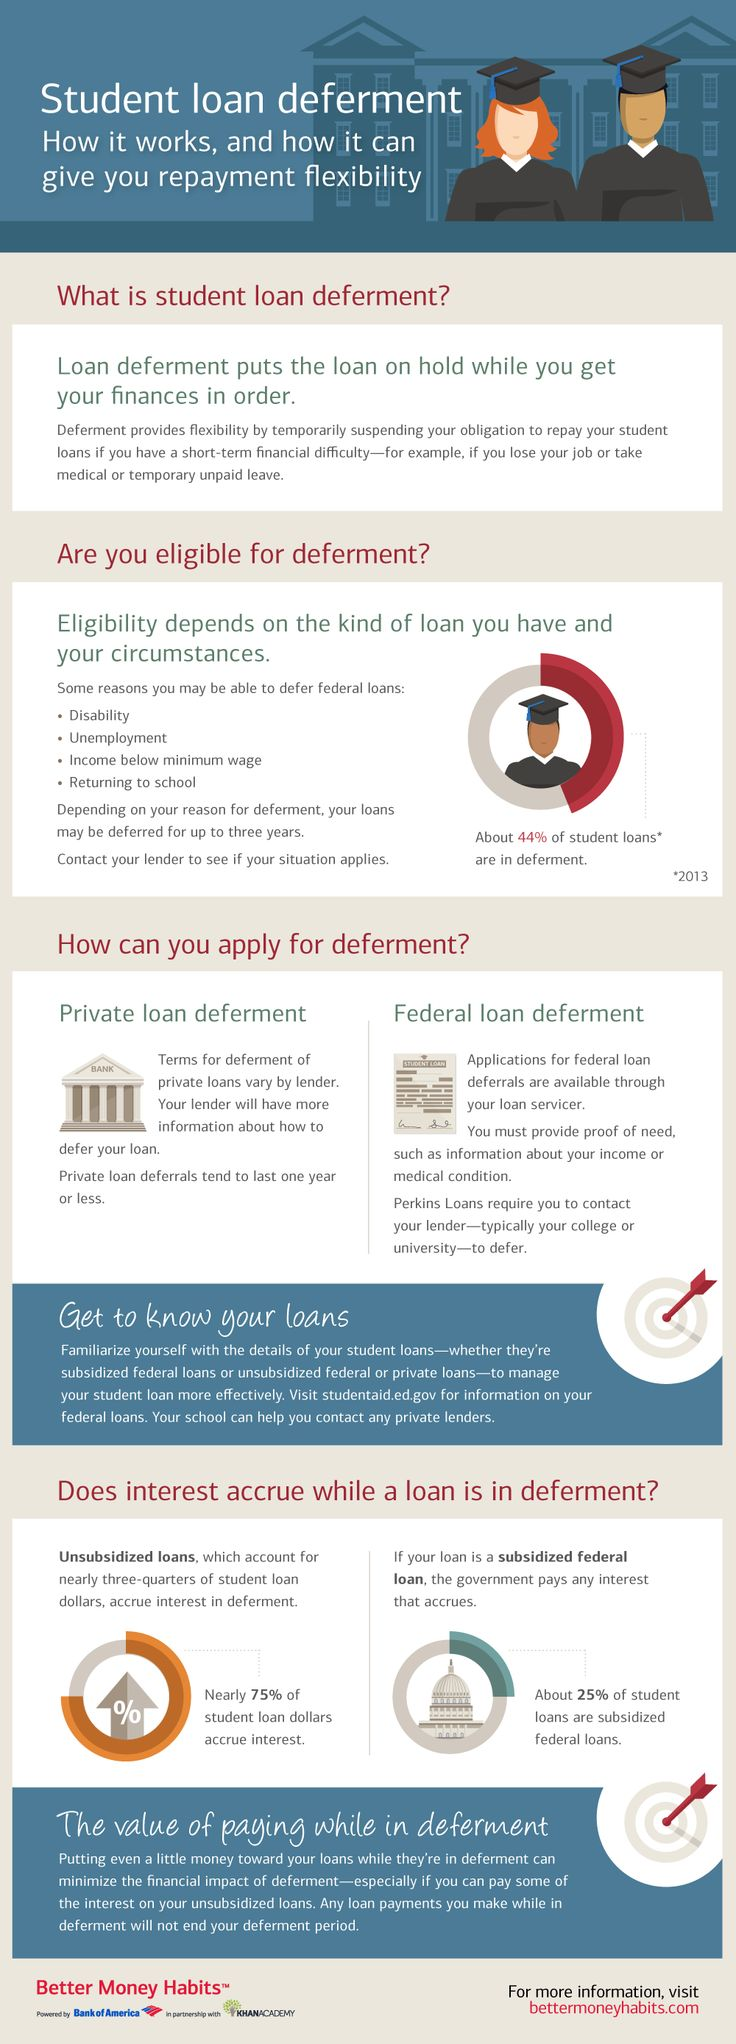 Student Loan Deferment - how it works, and how it can offer you repayment flexibility. (Infographic)